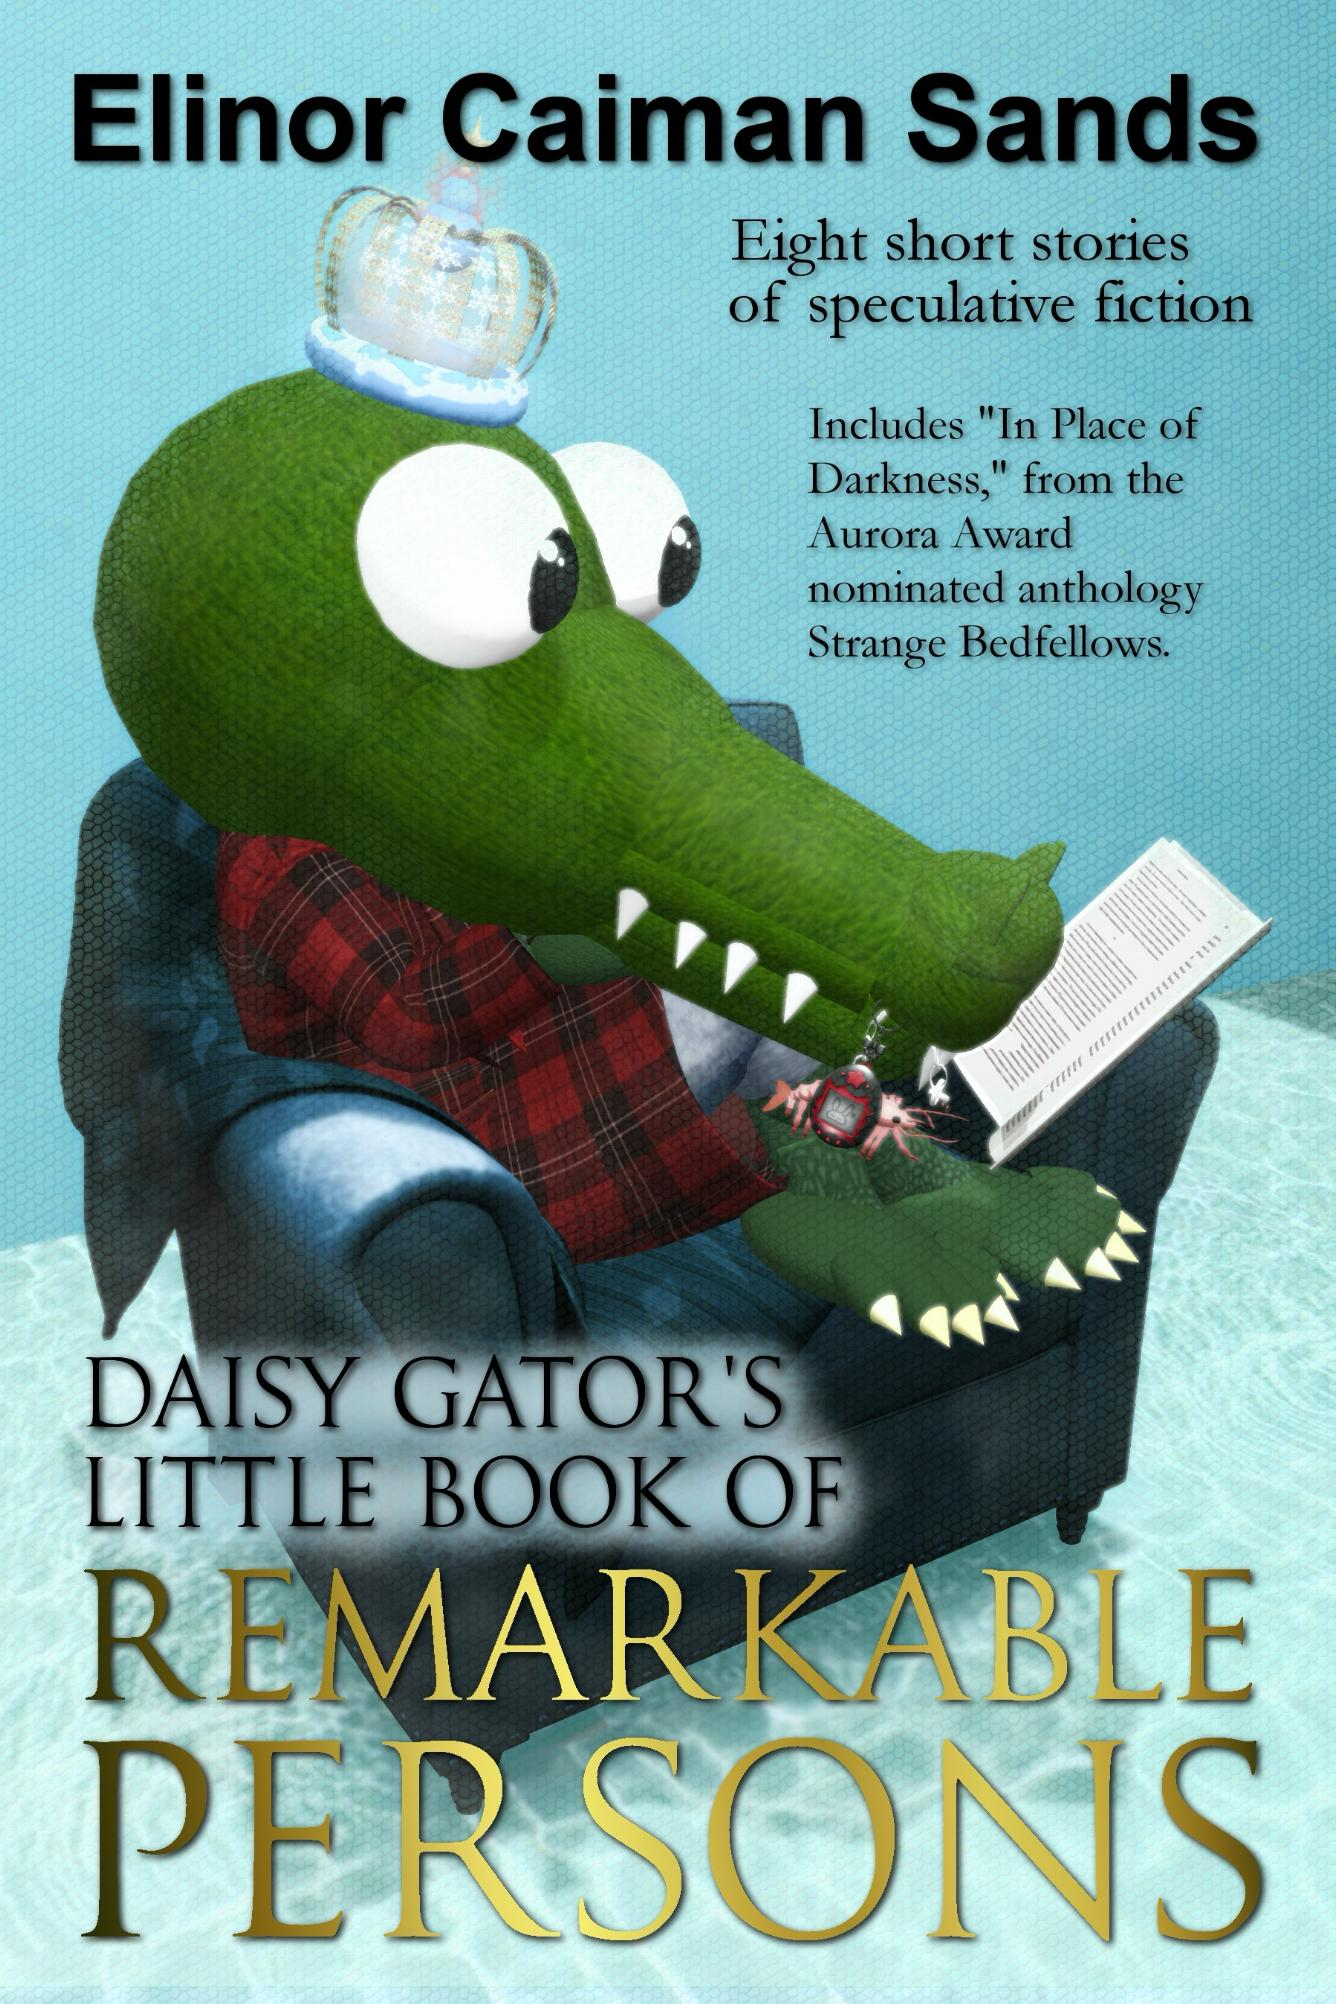 Daisy Gator's Little Book